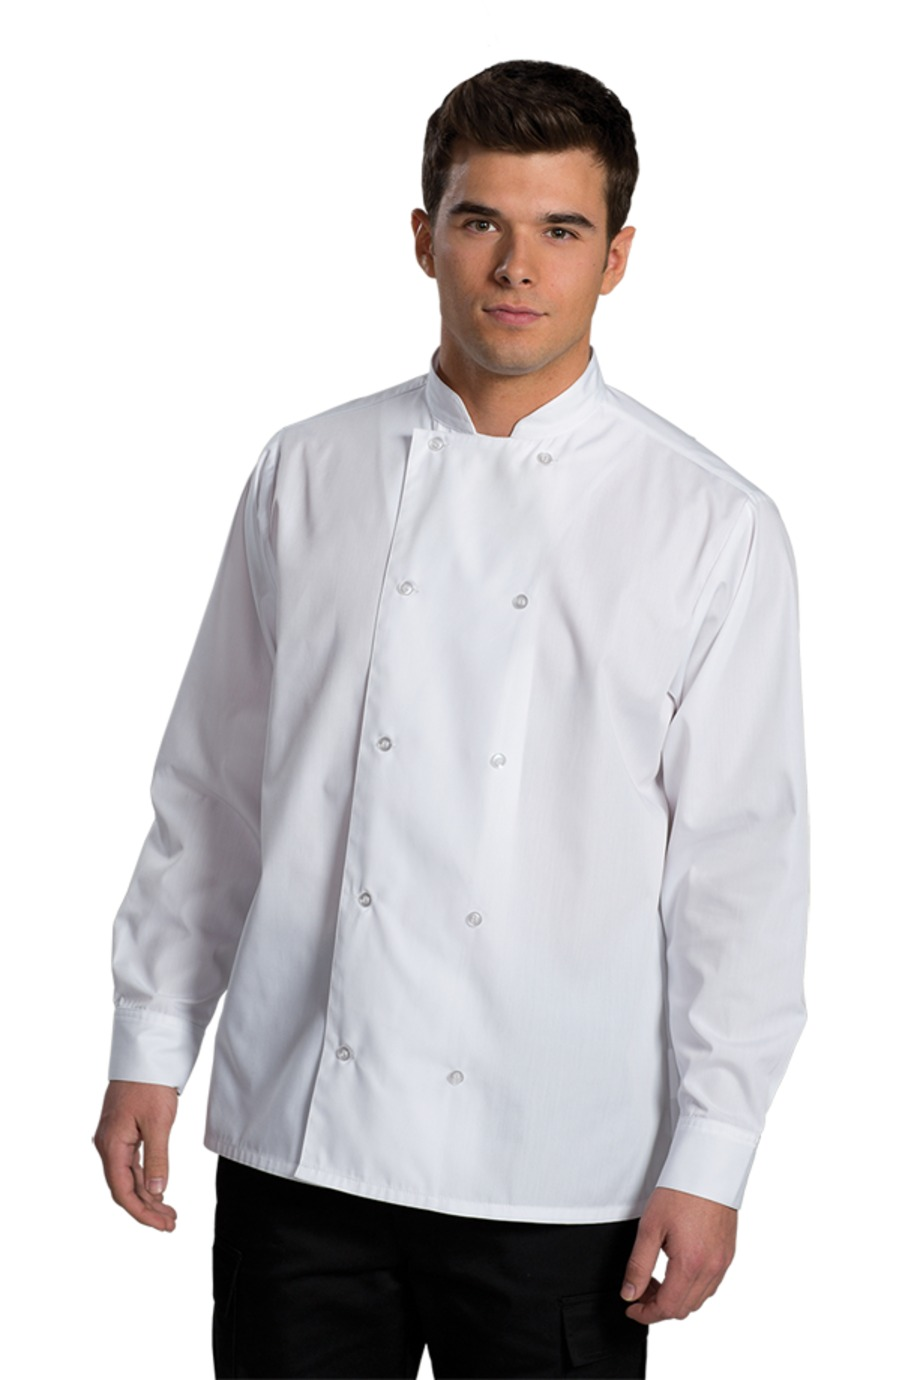 Edwards Garment 1351 - Double Breasted Server Shirt